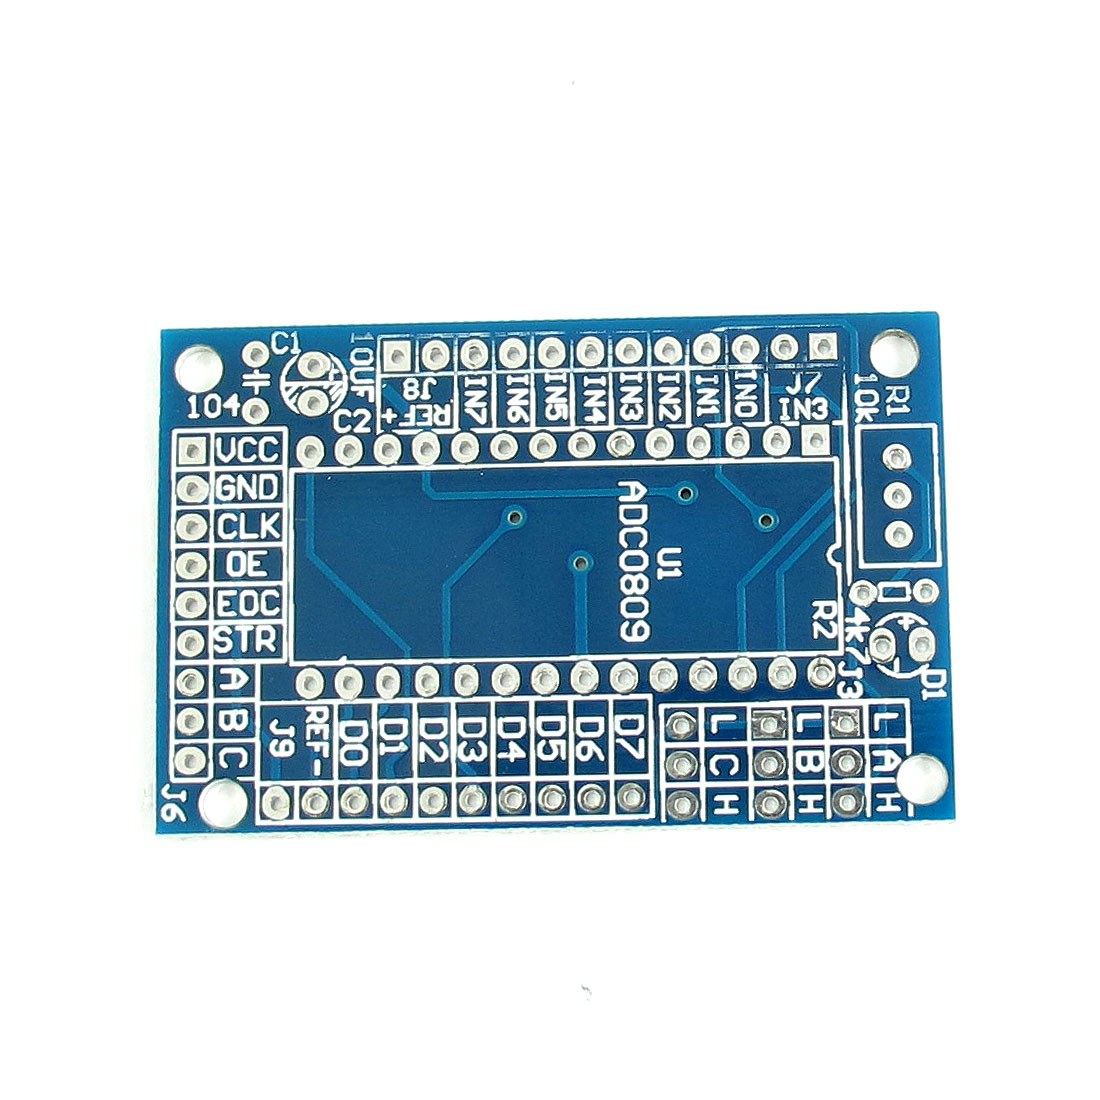 ADC0809 8-Bit Analog to Digital A/D Converter Module Printed Circuit Blank Board 52mmx34mm